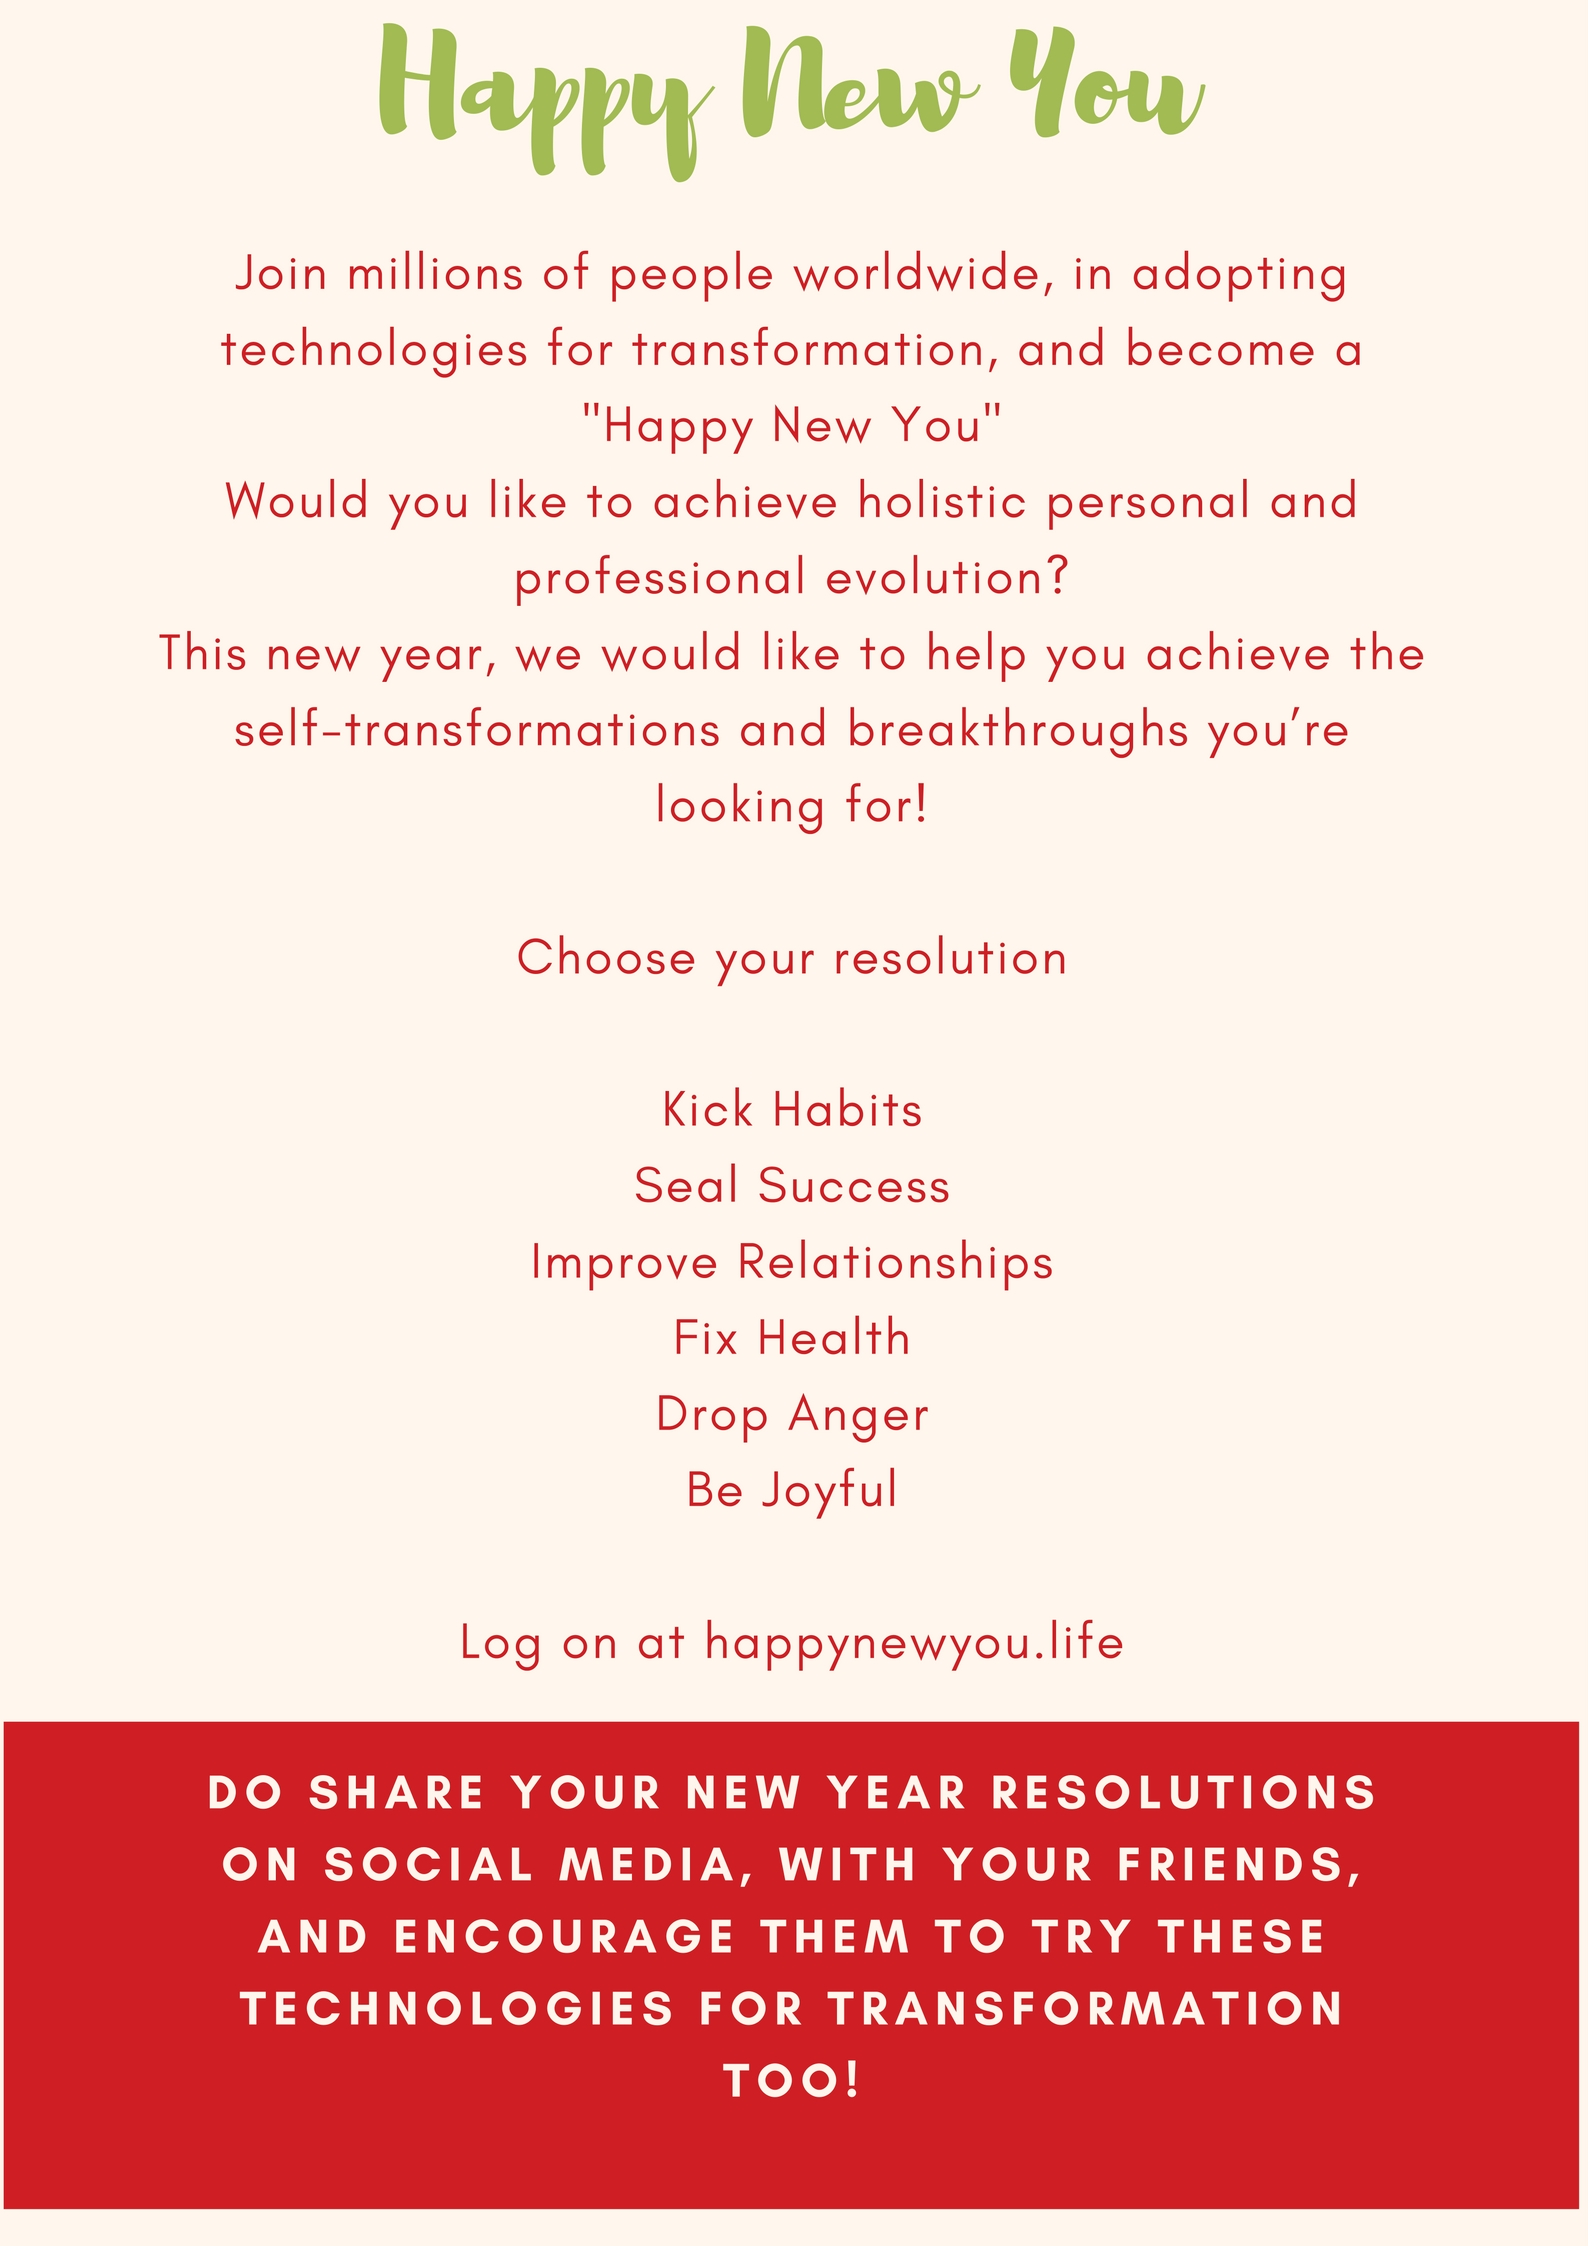 Happy New You poster.jpg